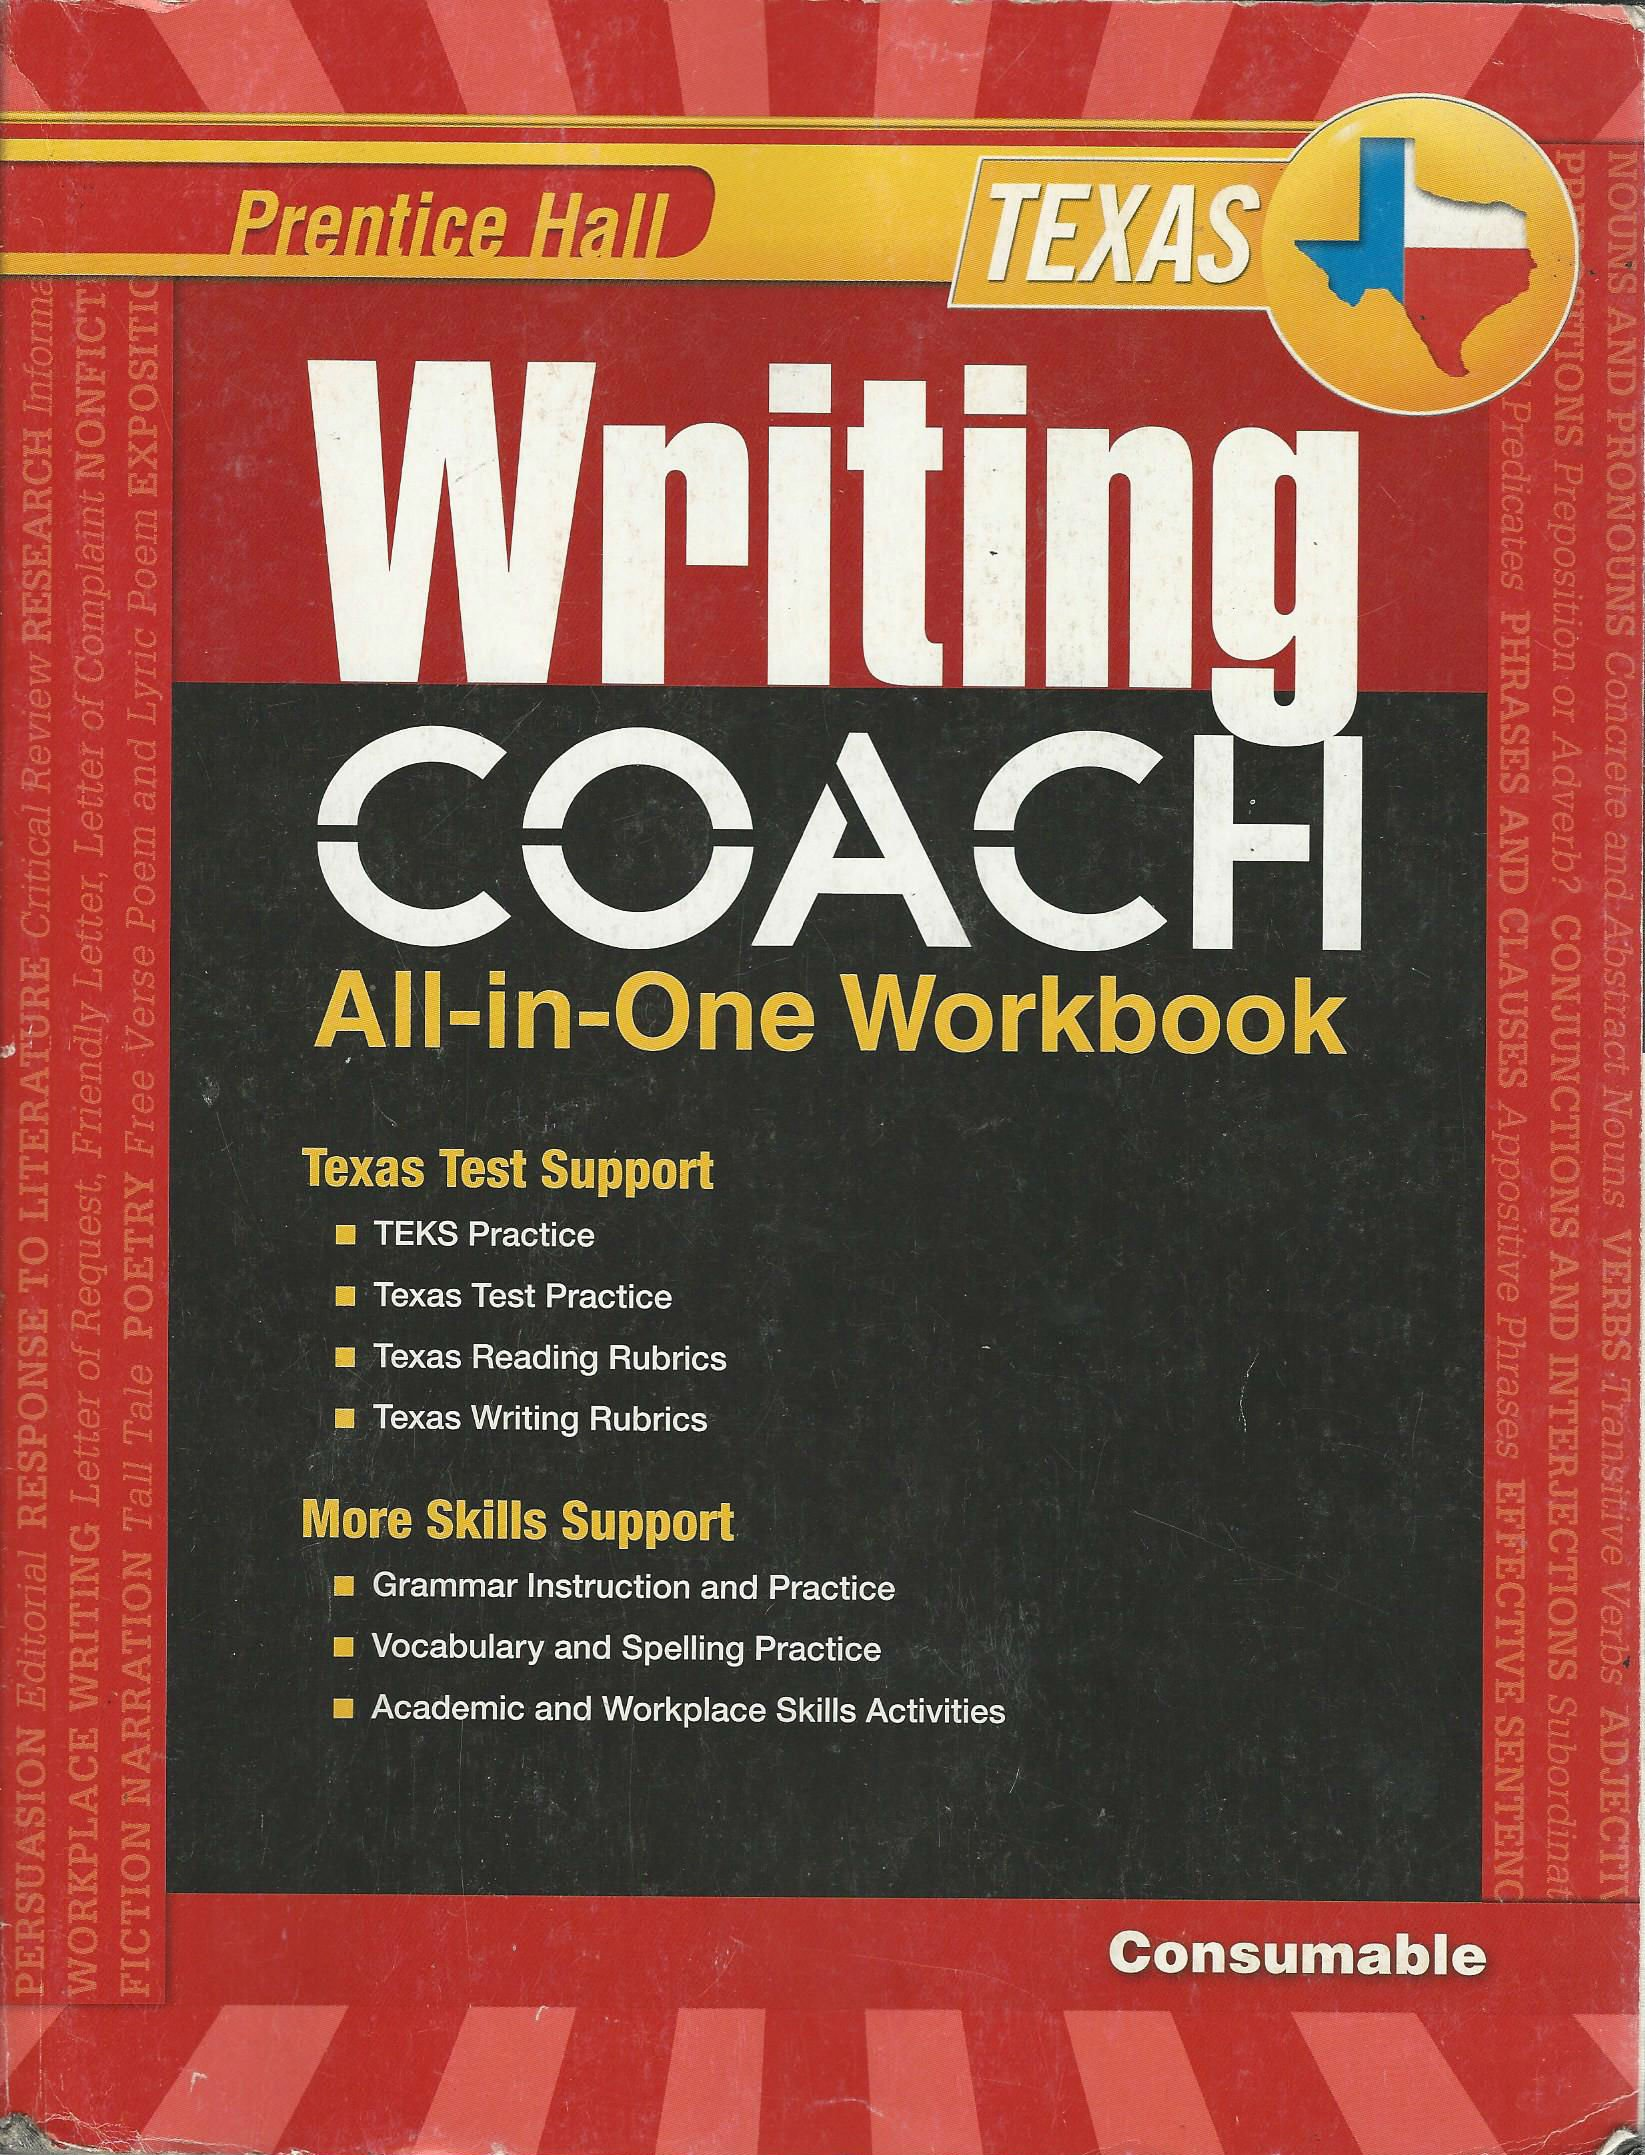 Prentice Hall Texas Writing Coach All-In-One Workbook: Grade 8:  9780133212556: Amazon.com: Books